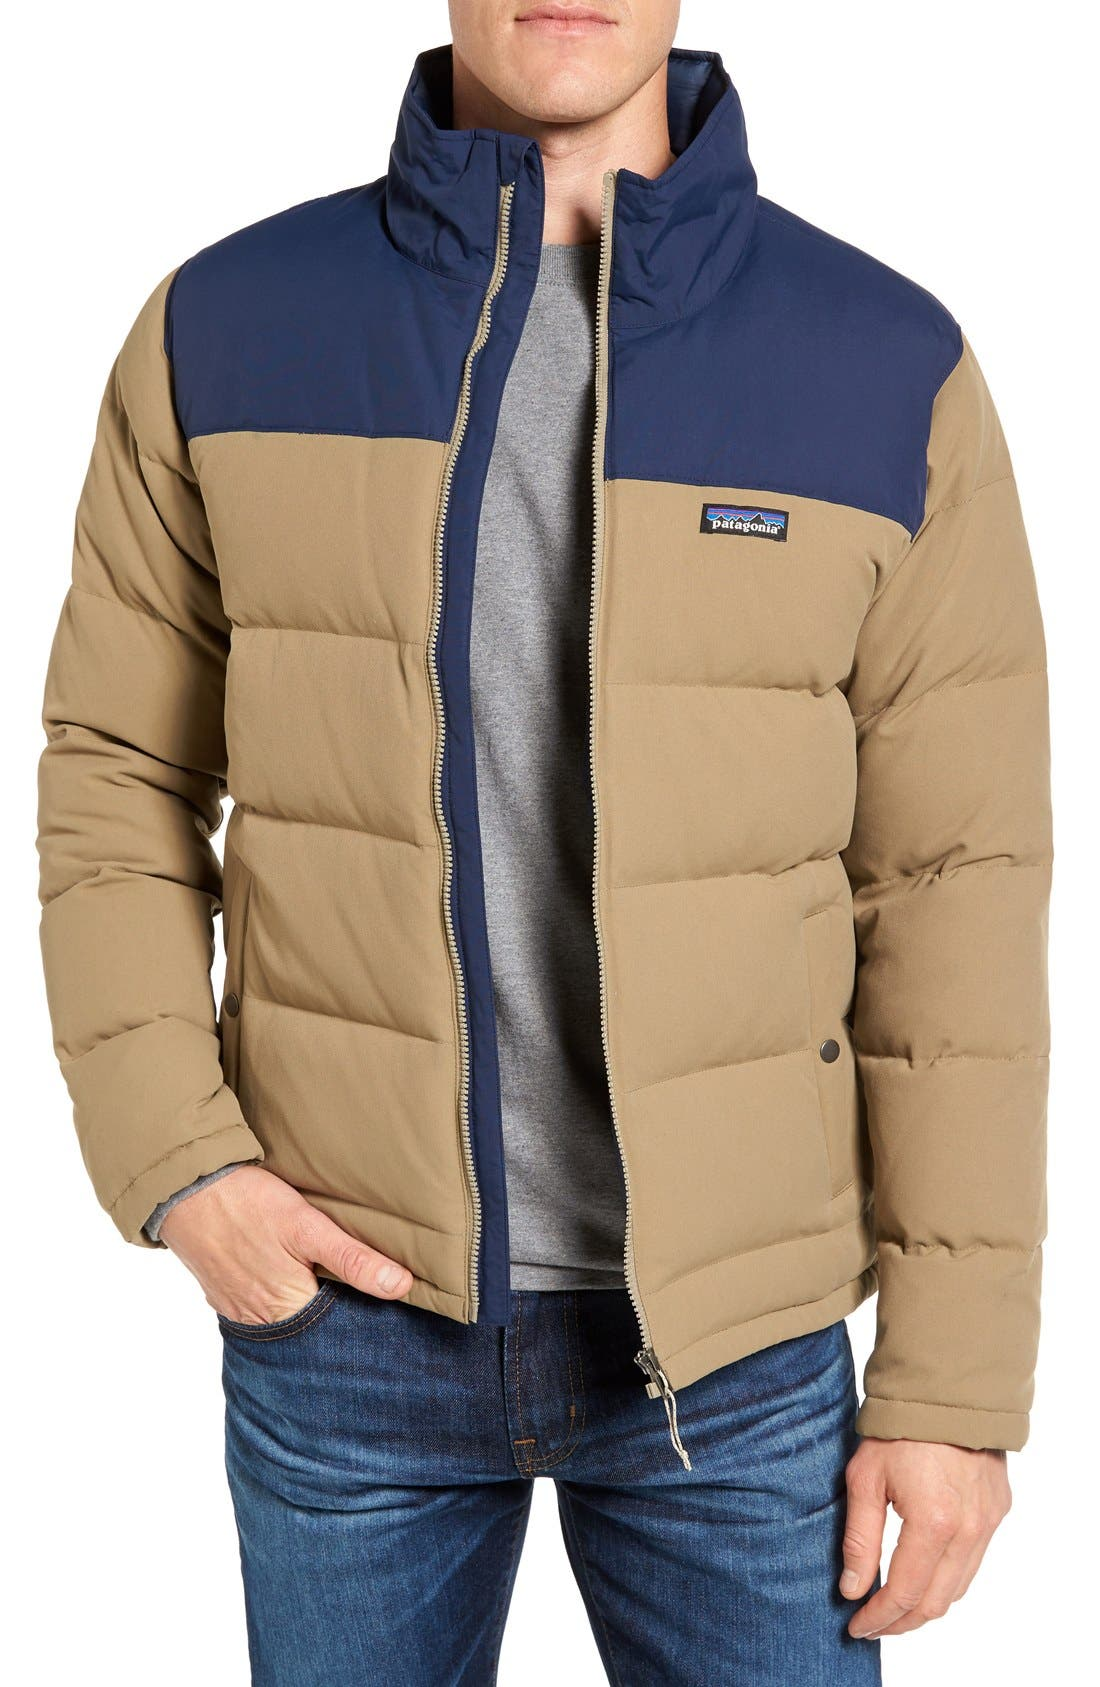 Patagonia Bivy Water Repellent Down Jacket